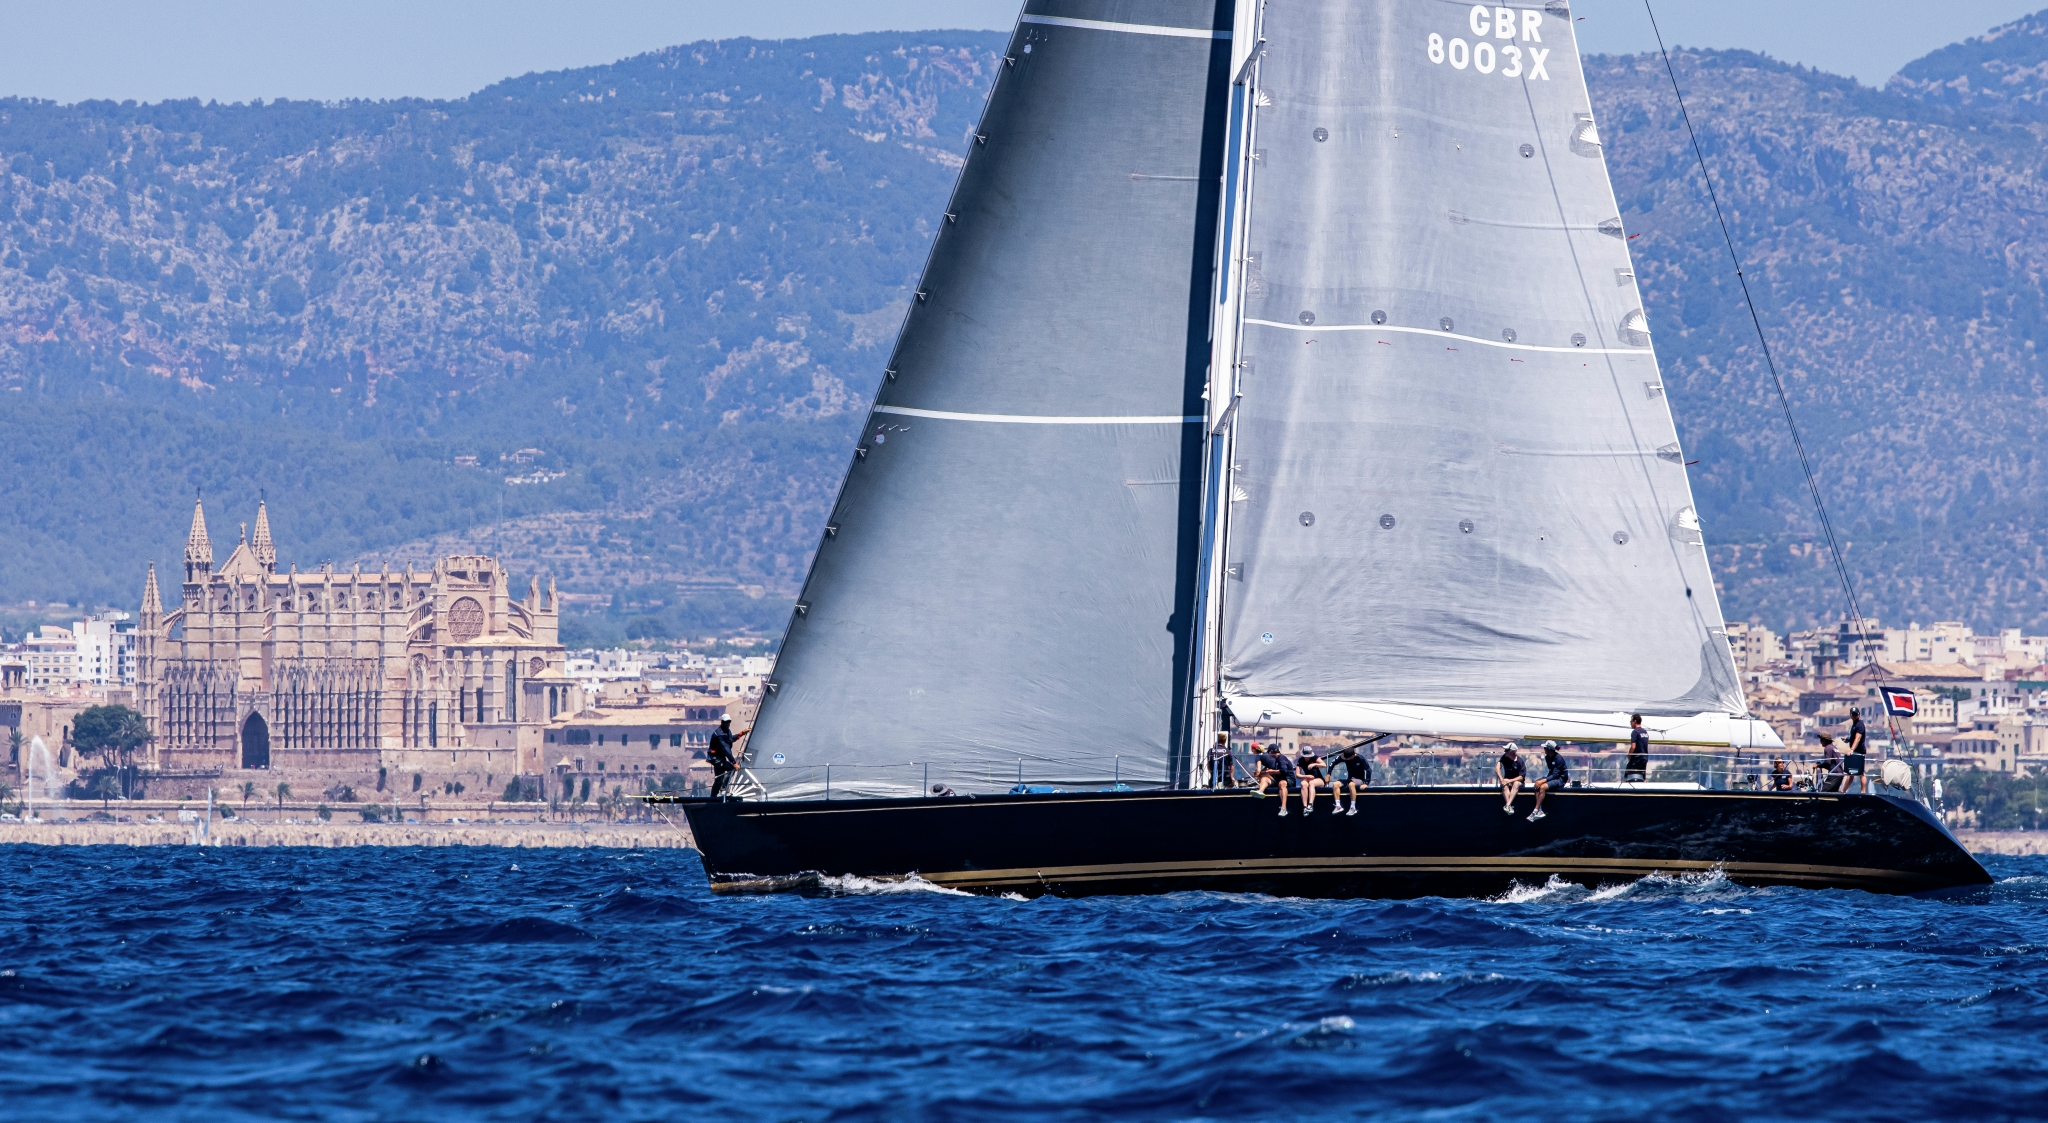 Superyacht Cup Palma 2021. What a magnificent backdrop Spain provides for the regatta.